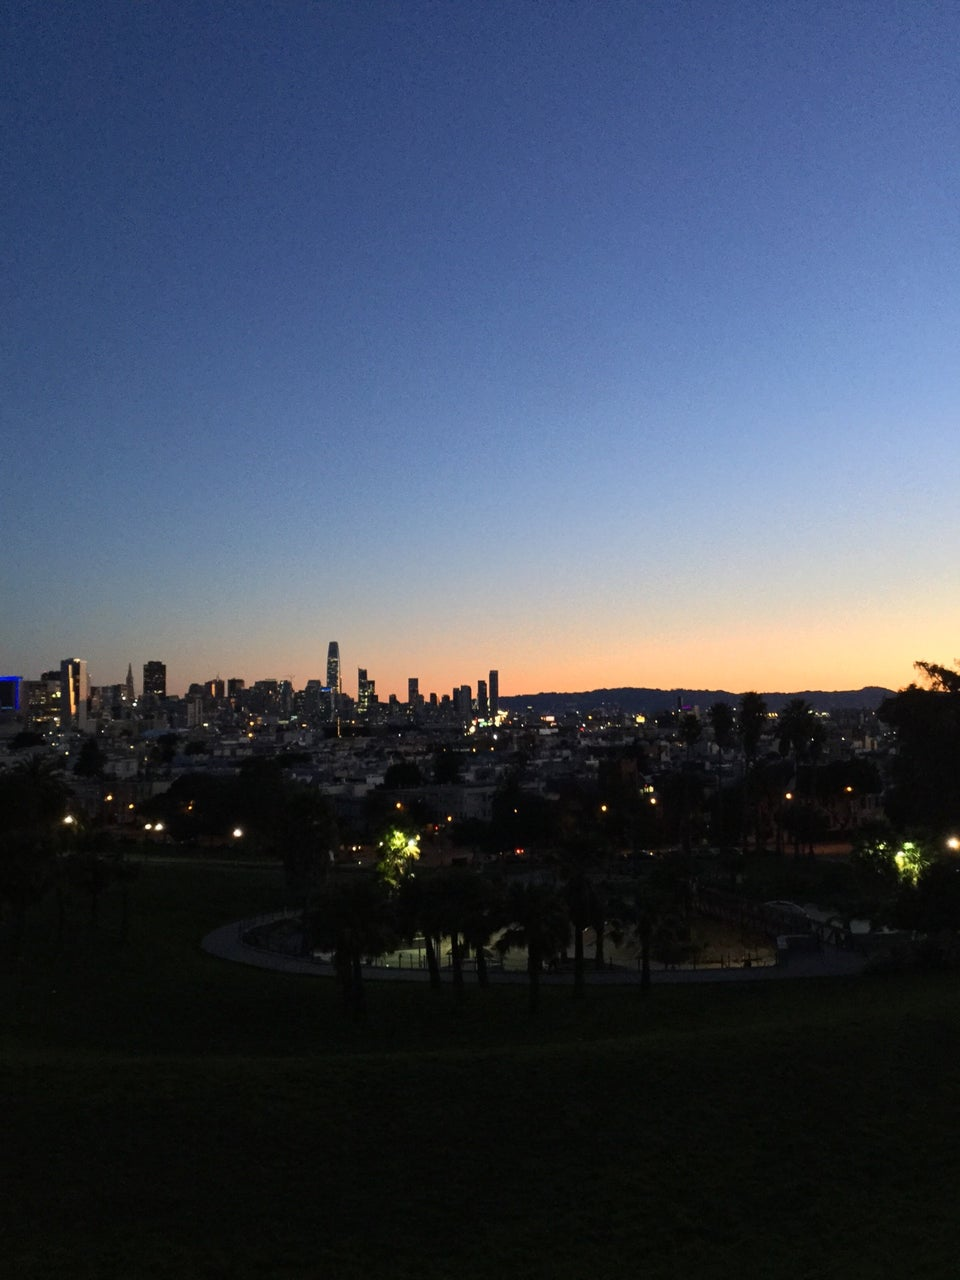 Clear blue to orange pre-dawn gradient sky above the San Francisco skyline in the distance behind a barely visible Dolores Park, a few paths and trees lit in by lamps.